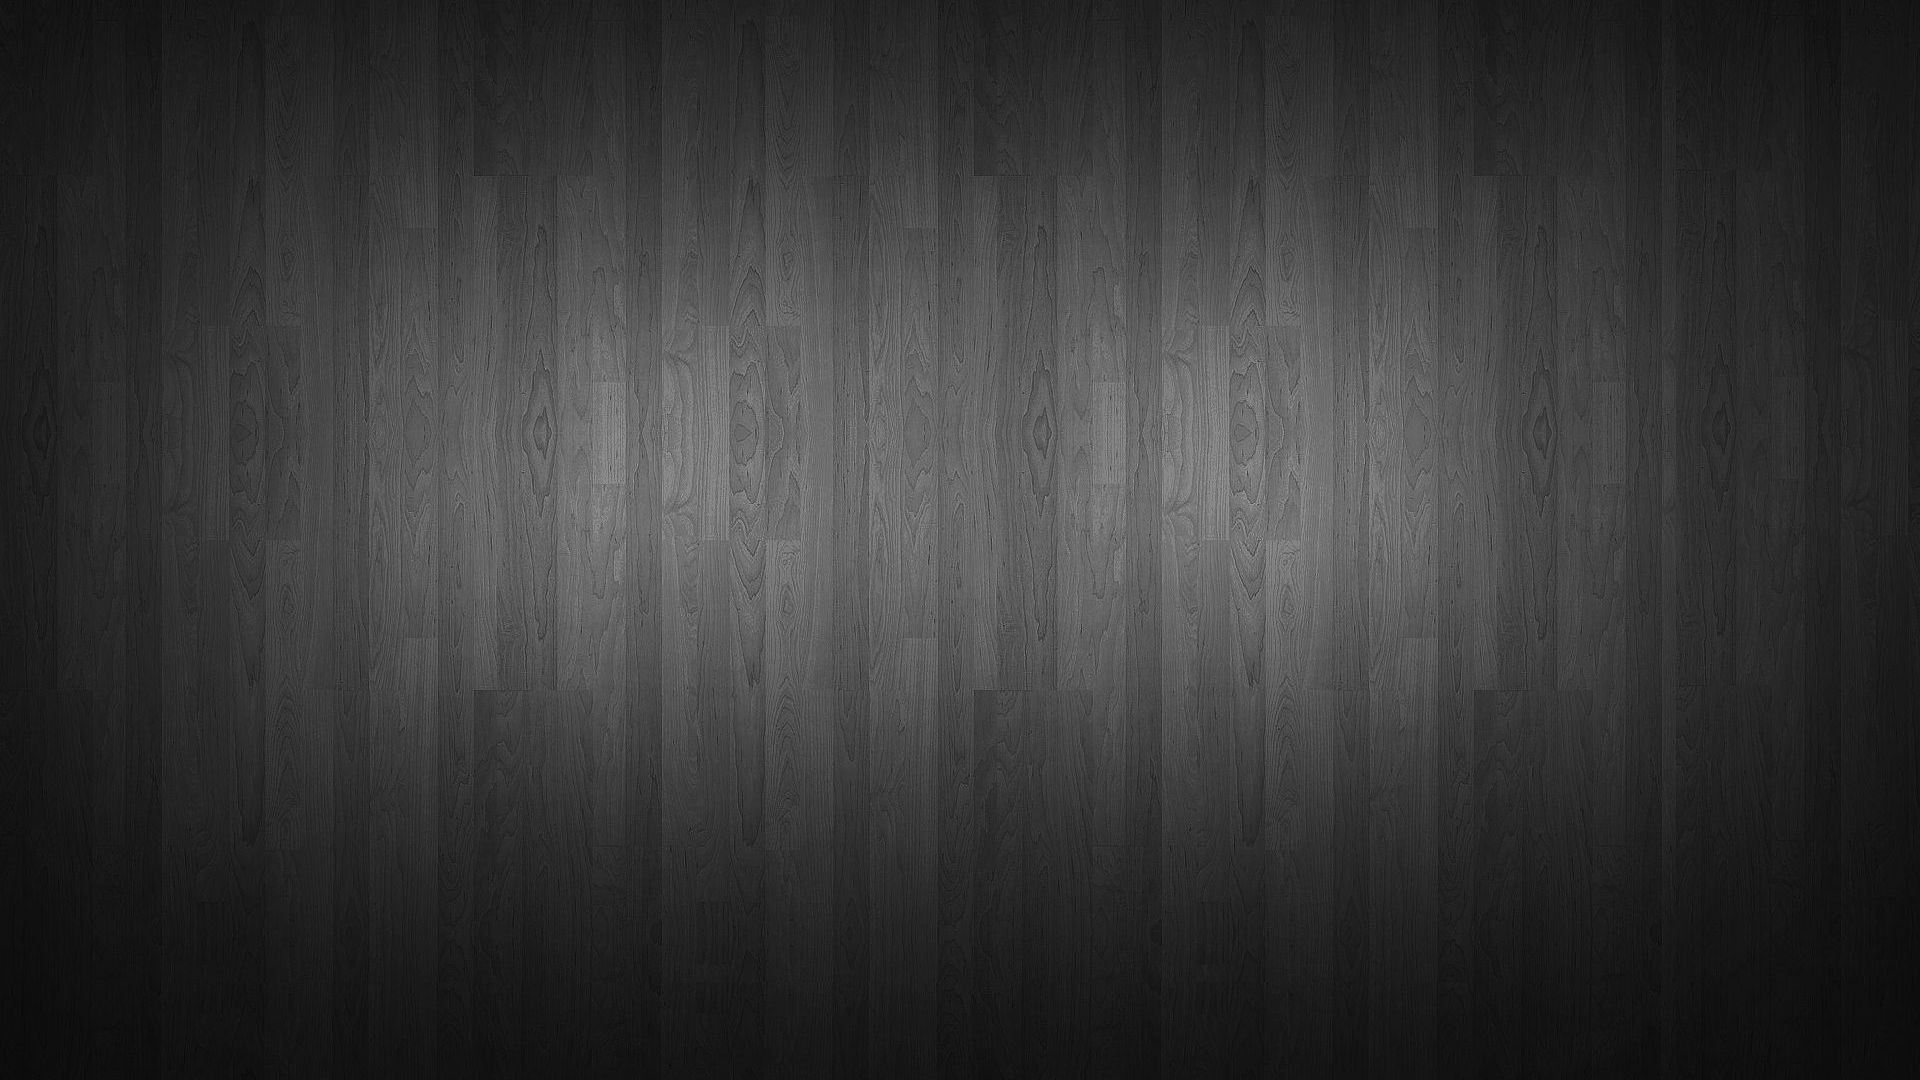 Decoration of the background of your computer wallpaper